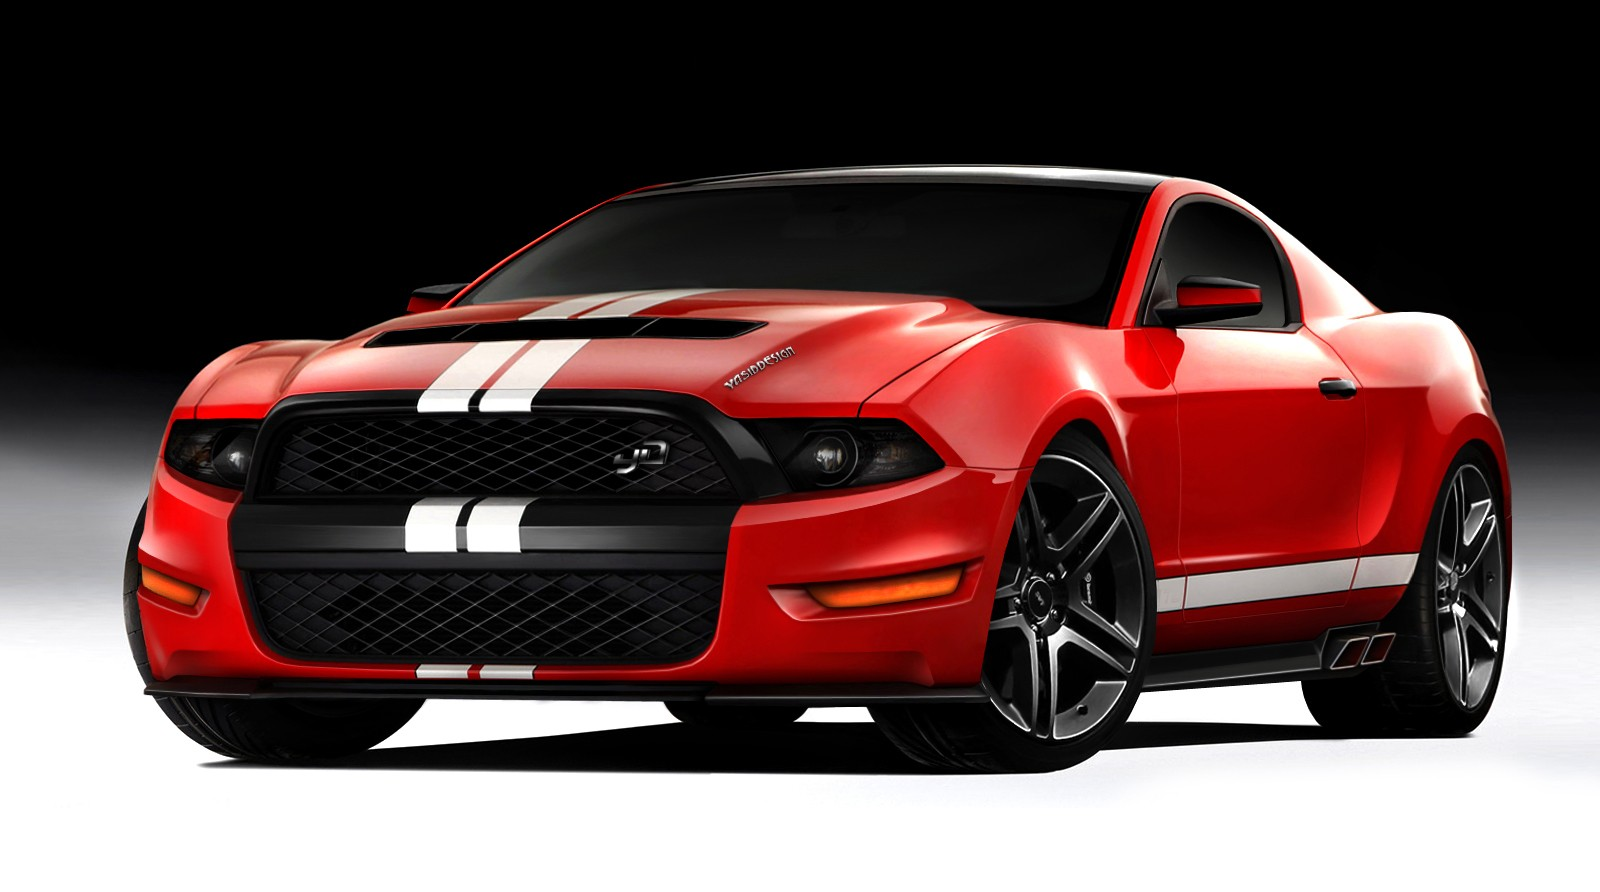 2014 ford shelby gt500 image 17. Cars Review. Best American Auto & Cars Review